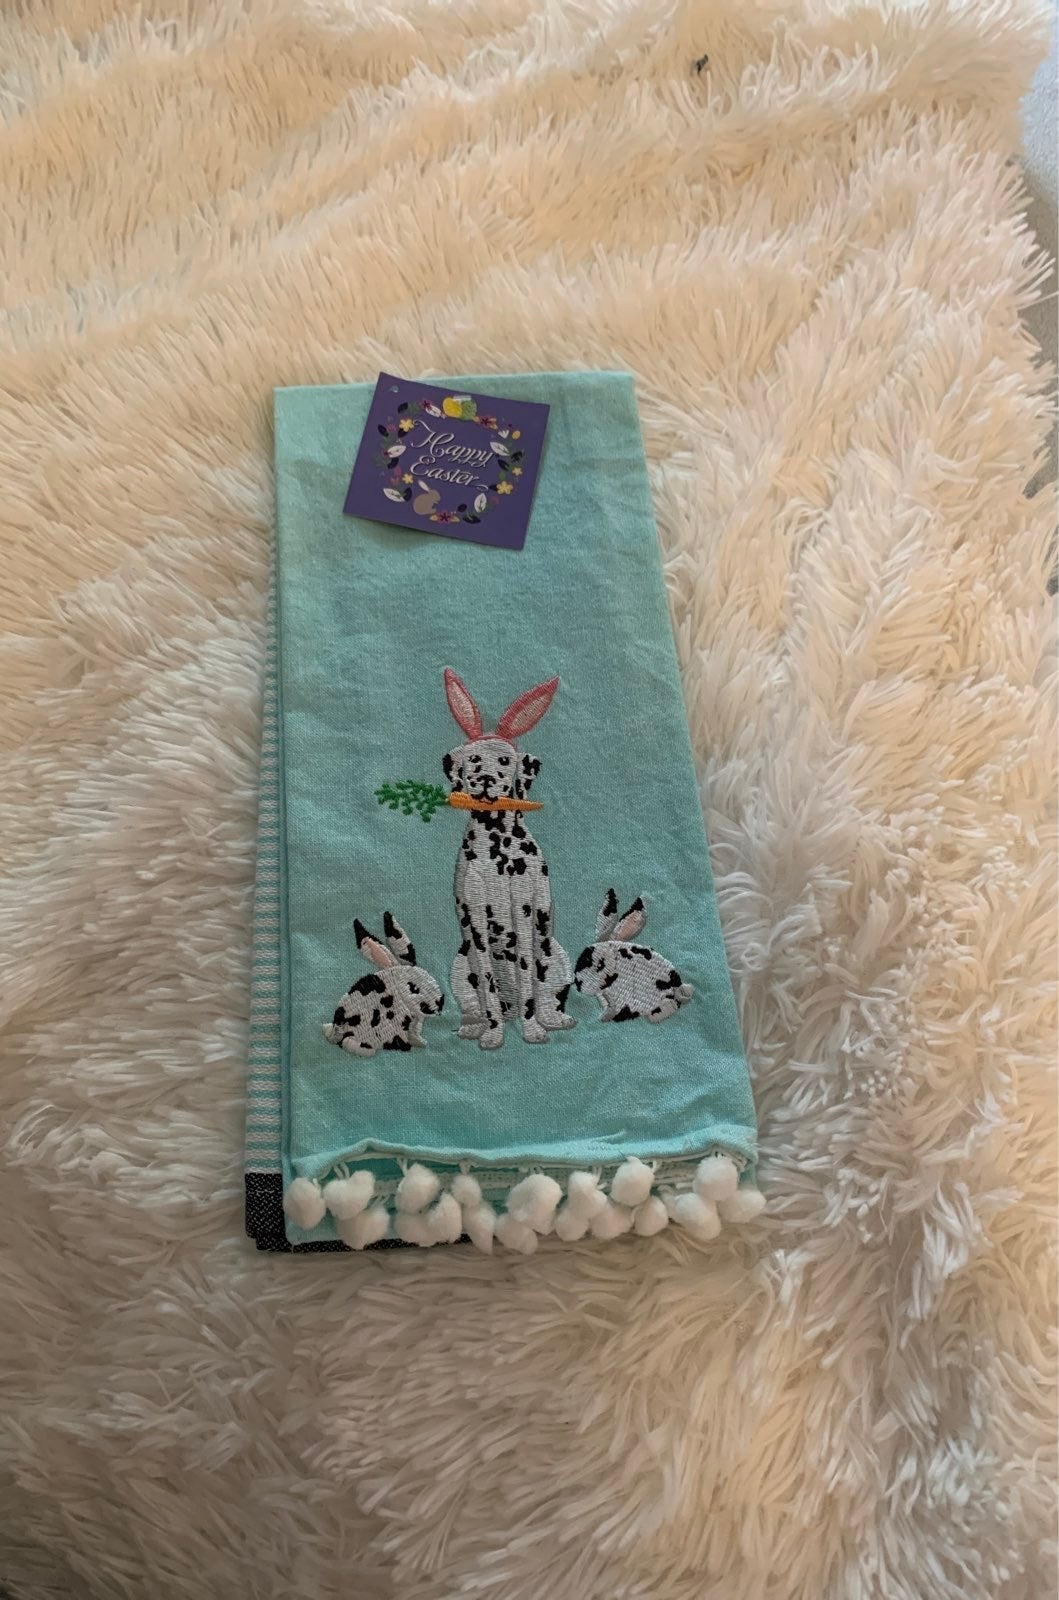 Nwt whimsical dalmation Easter towels